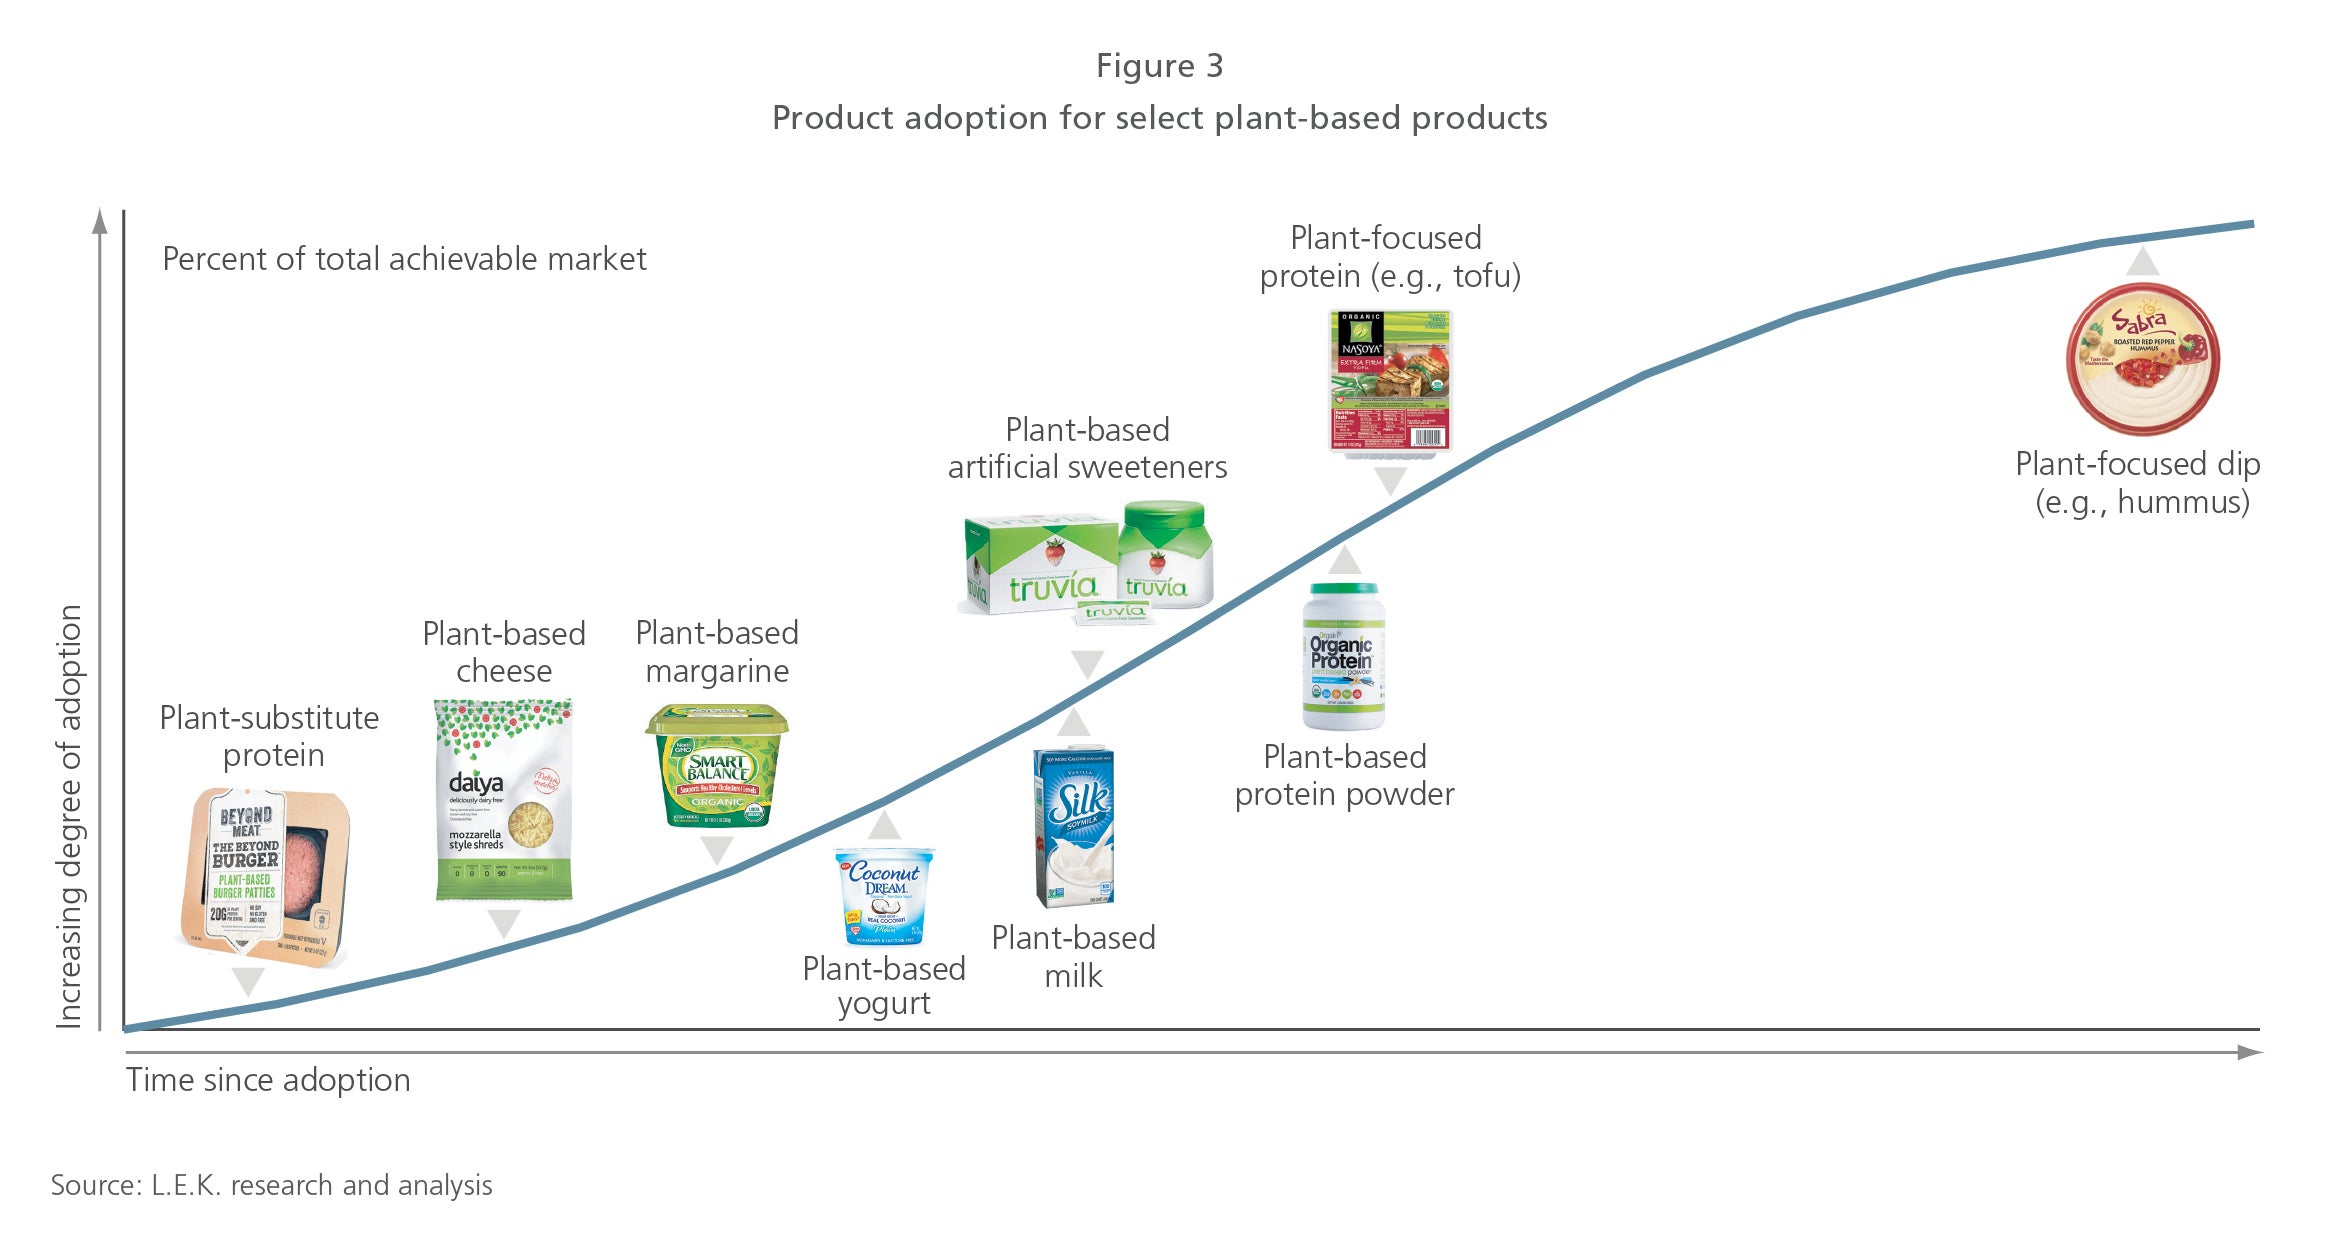 Plant-based products figure 3